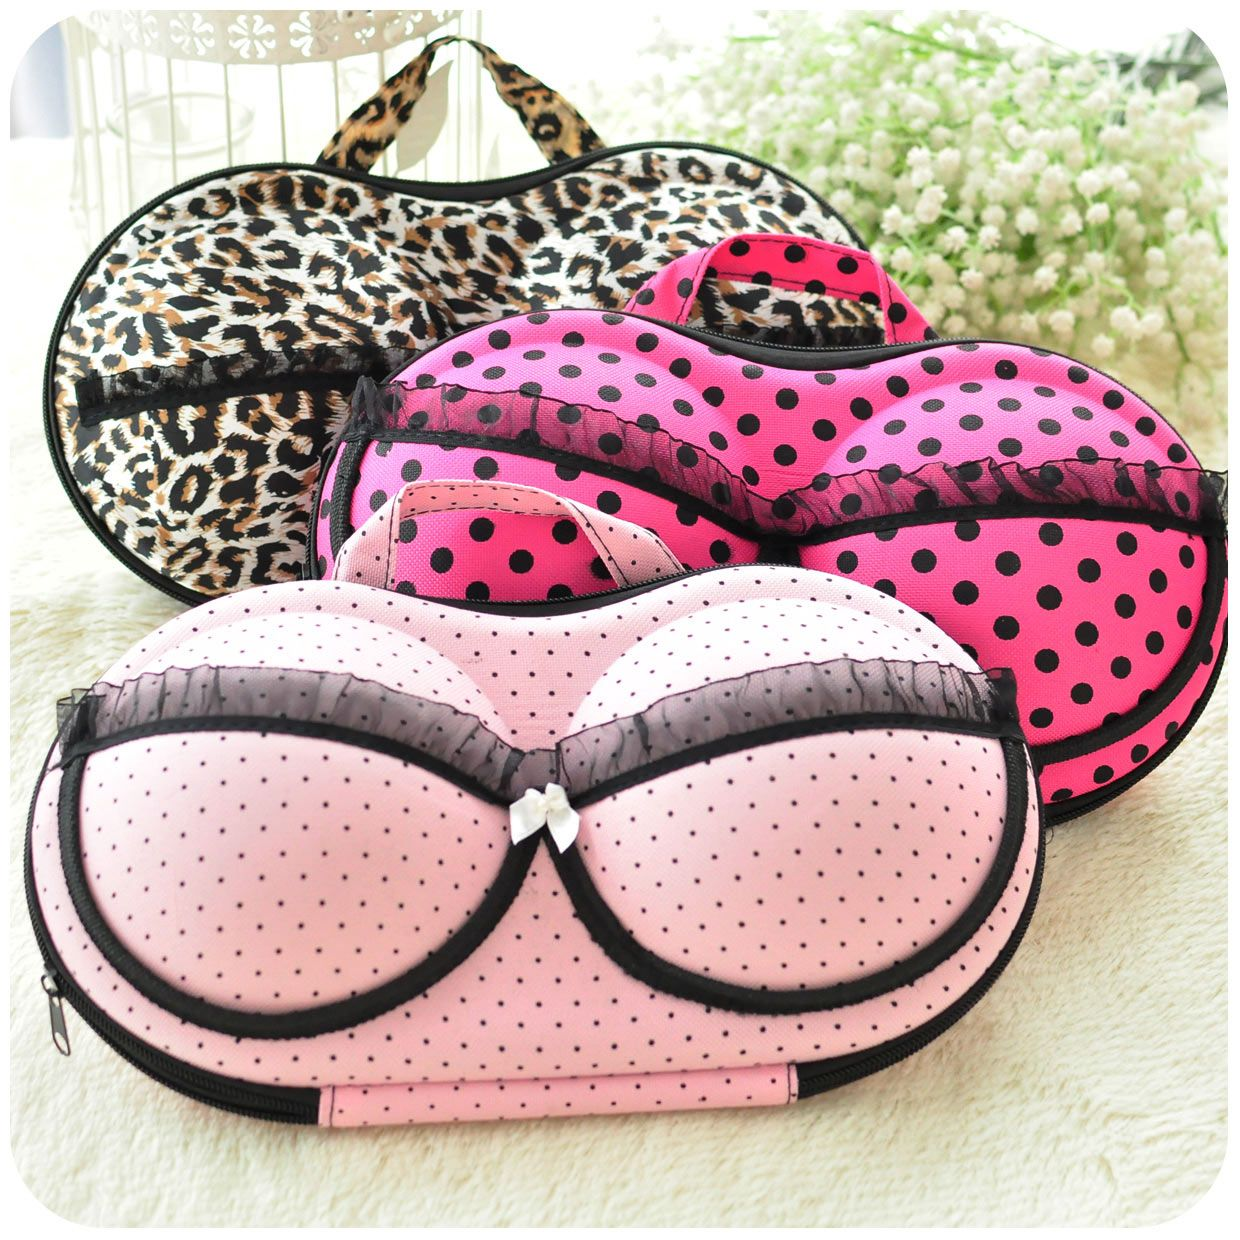 Exceptional Bag Vacuum On Sale At Reasonable Prices, Buy 3 Colors Hearts . Underwear  Storage Box Covered Bra Finishing Box Panties Socks Travel Portable Storage  Box ...